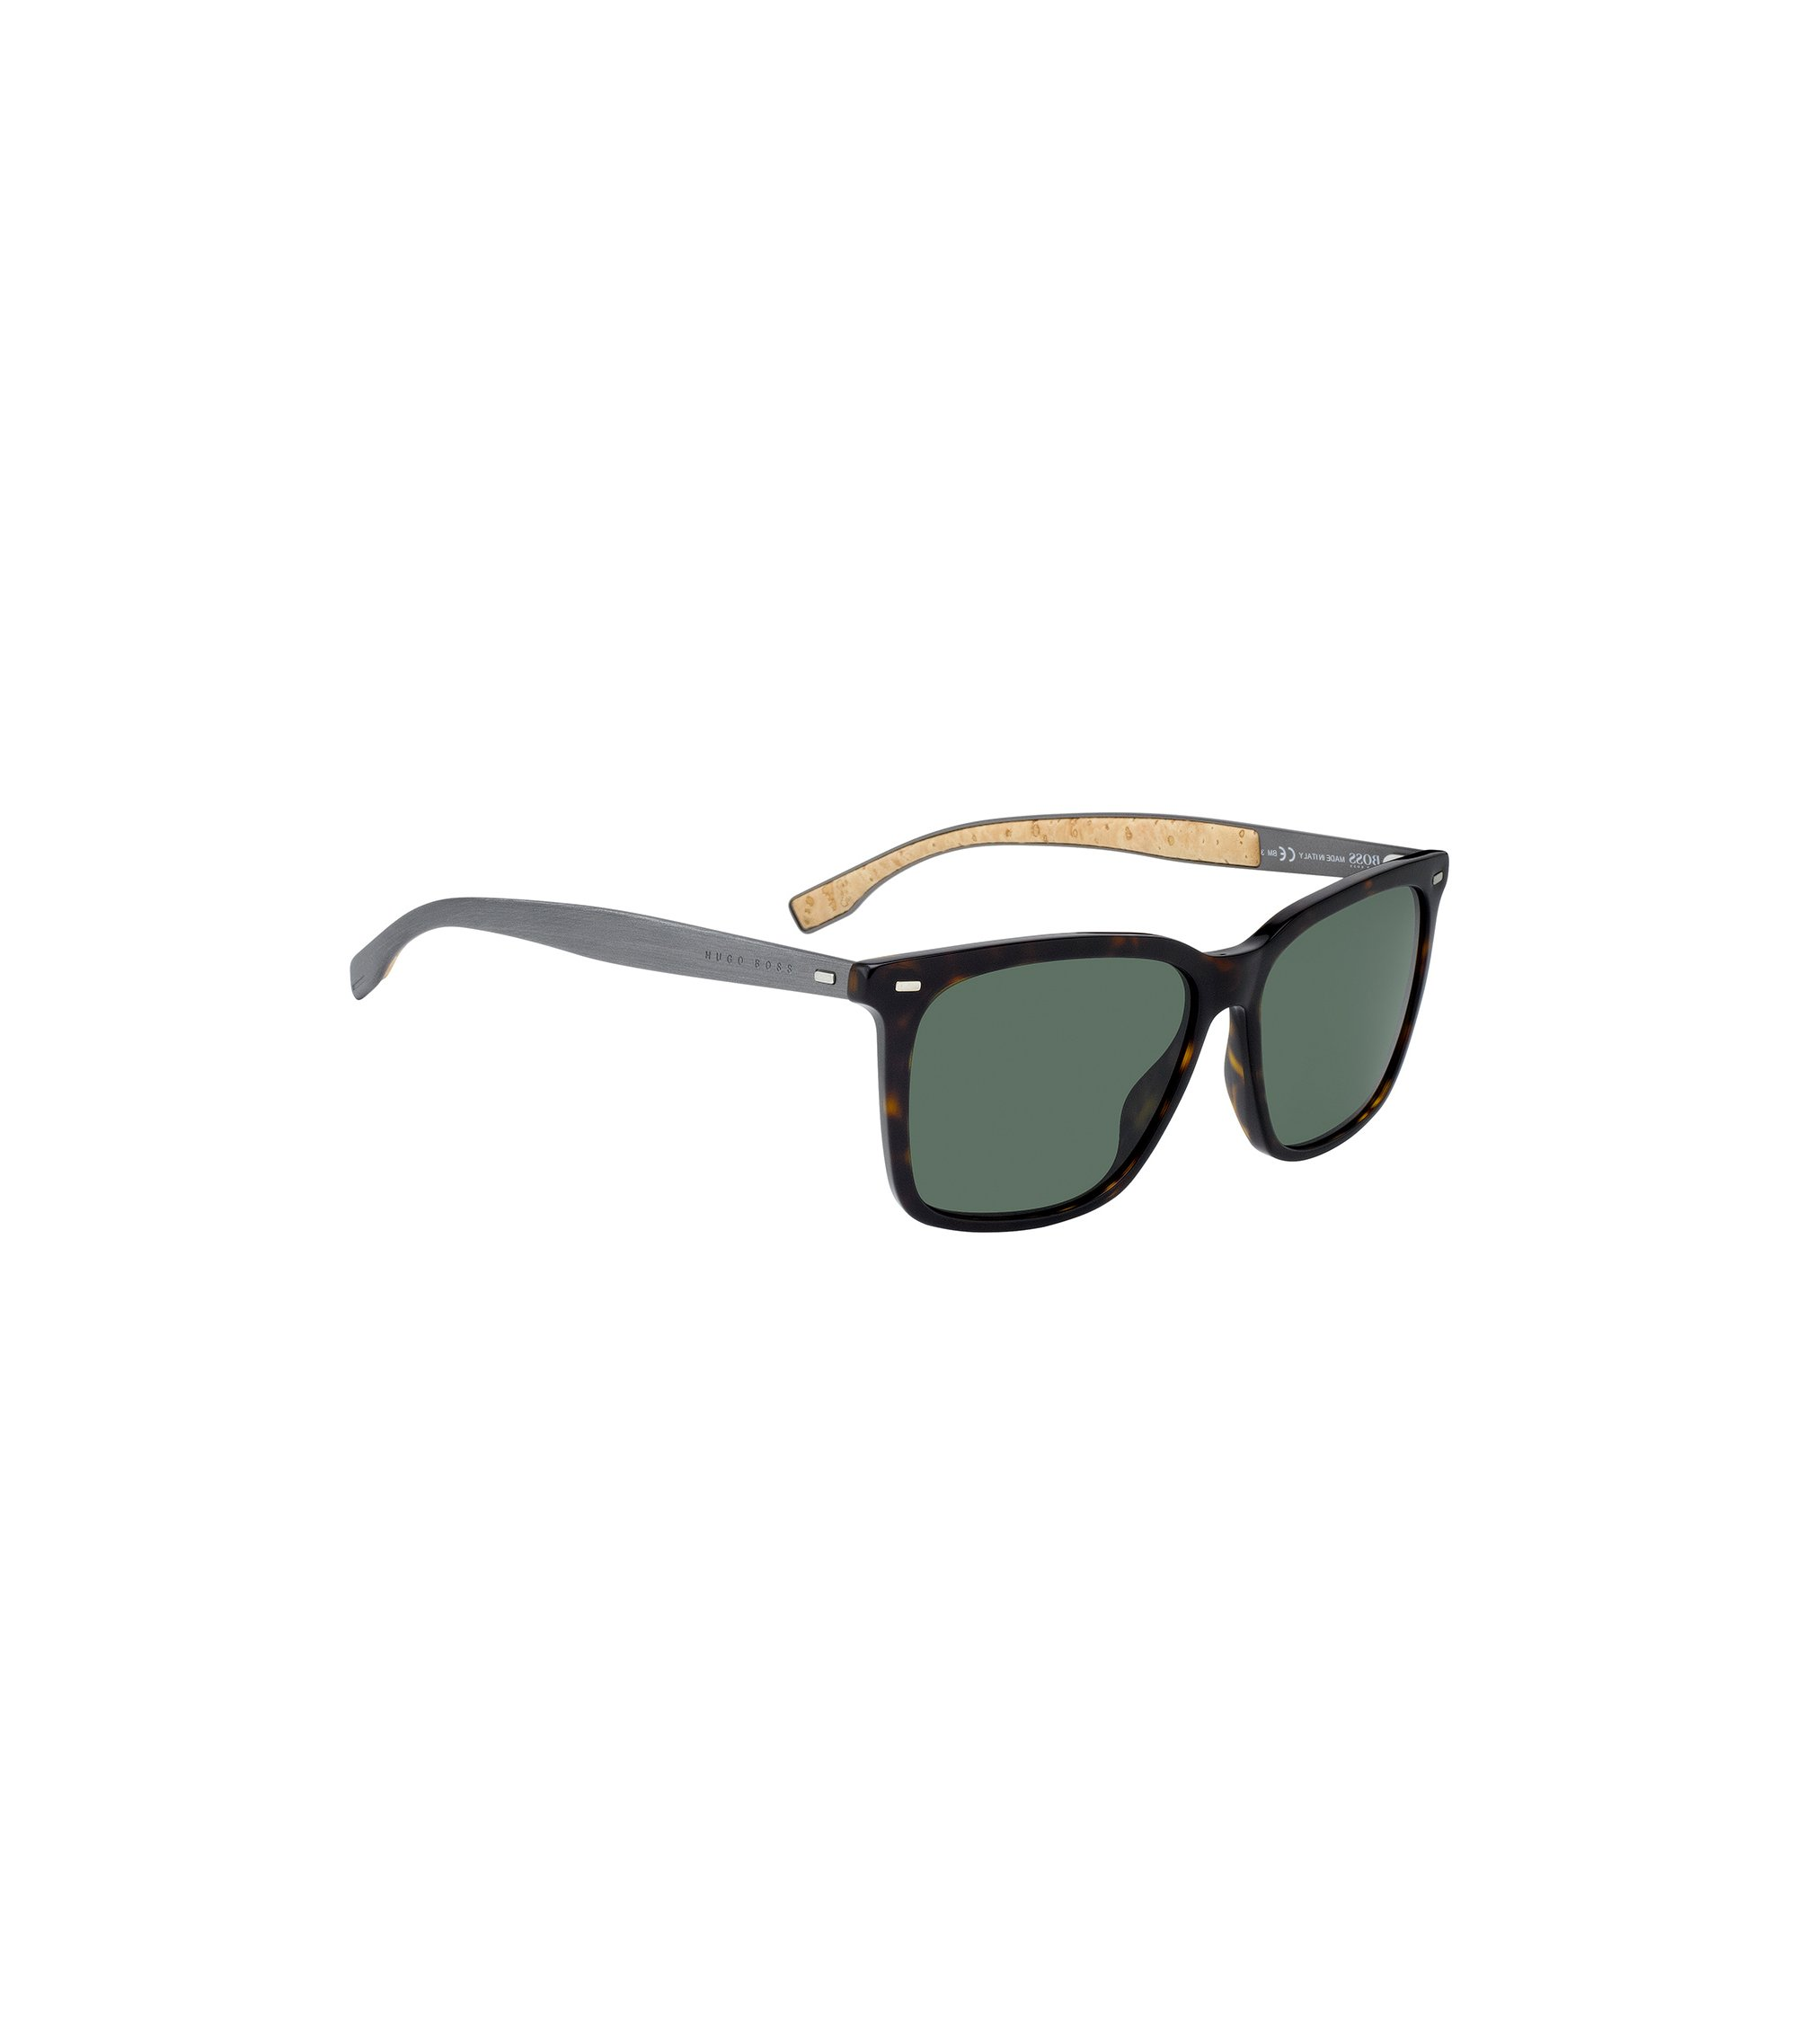 Sunglasses with cork-lined aluminium arms, Assorted-Pre-Pack